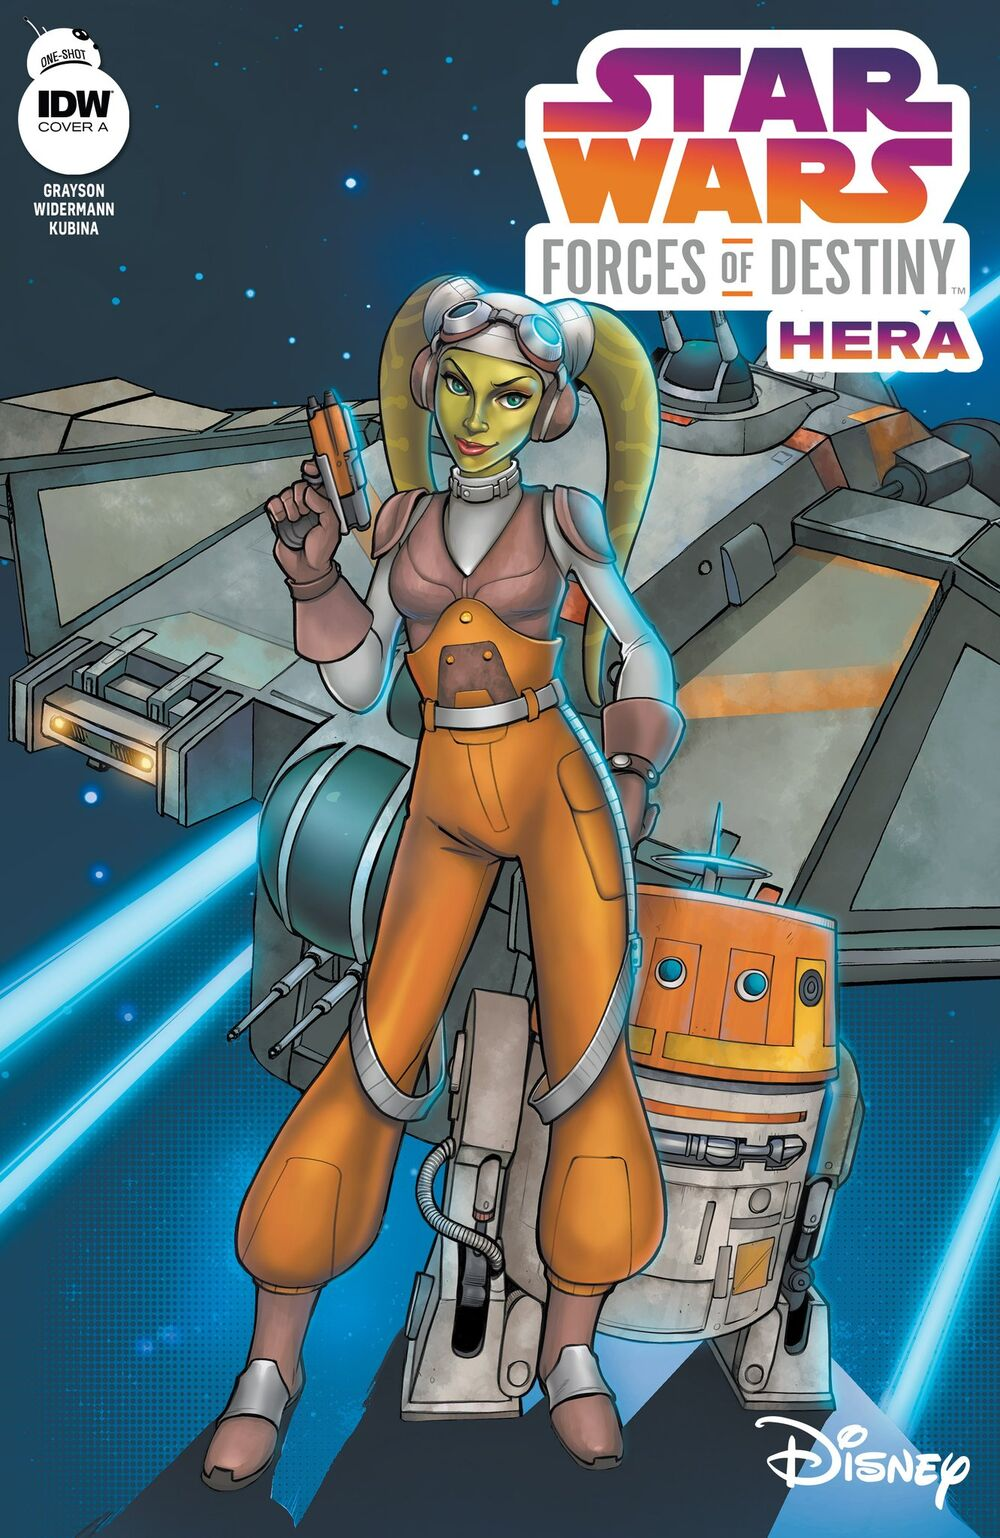 Star Wars Forces of Destiny: Hera